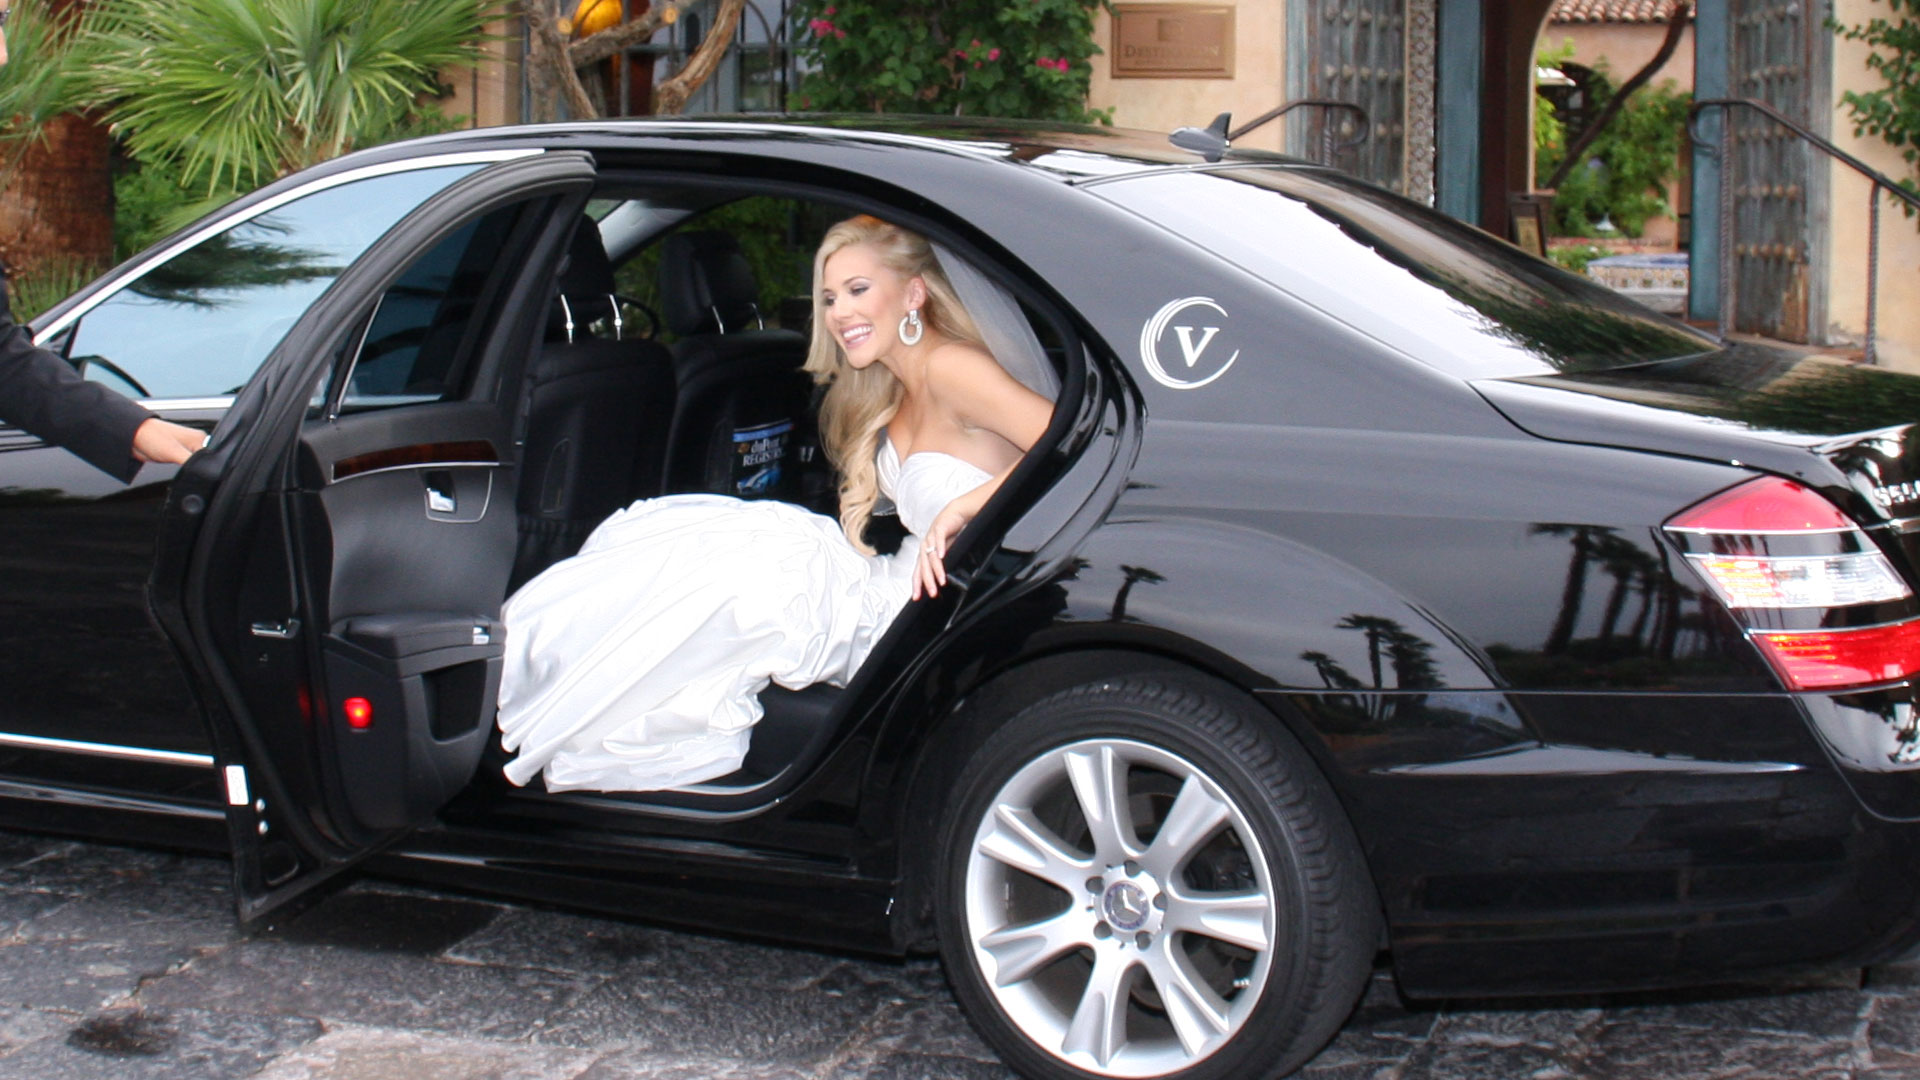 Wedding Transport Options for Small or Large Wedding Parties